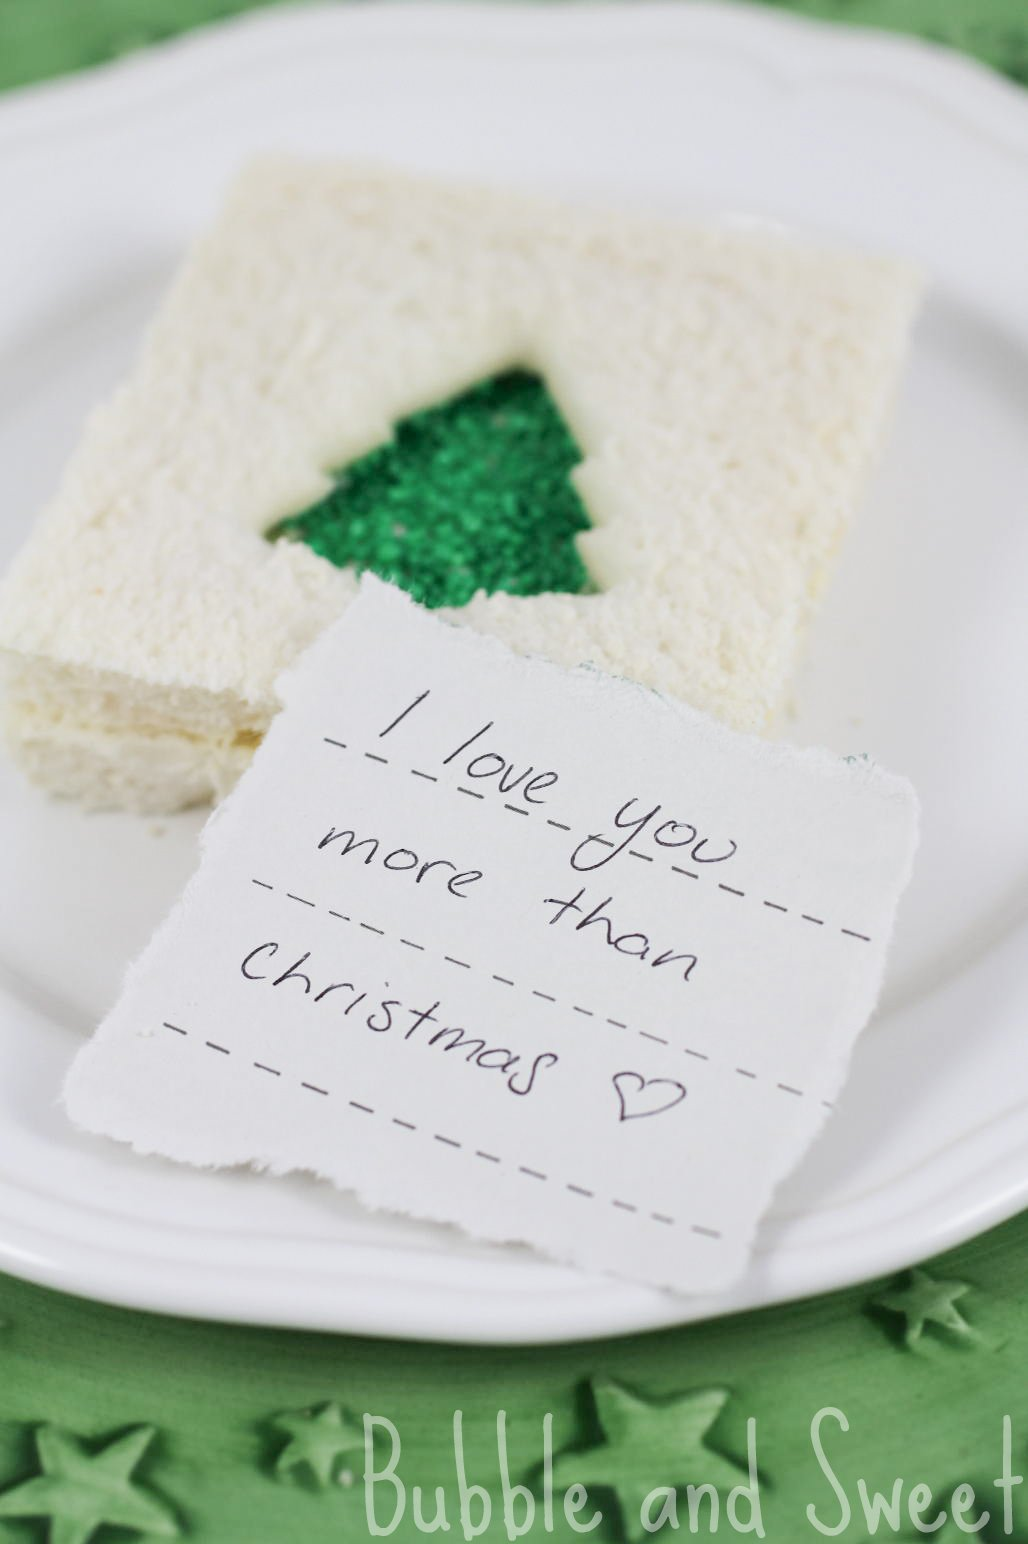 I Love You More Than Quotes Bubble And Sweet I Love You More Than Christmas Kids Lunch Treats